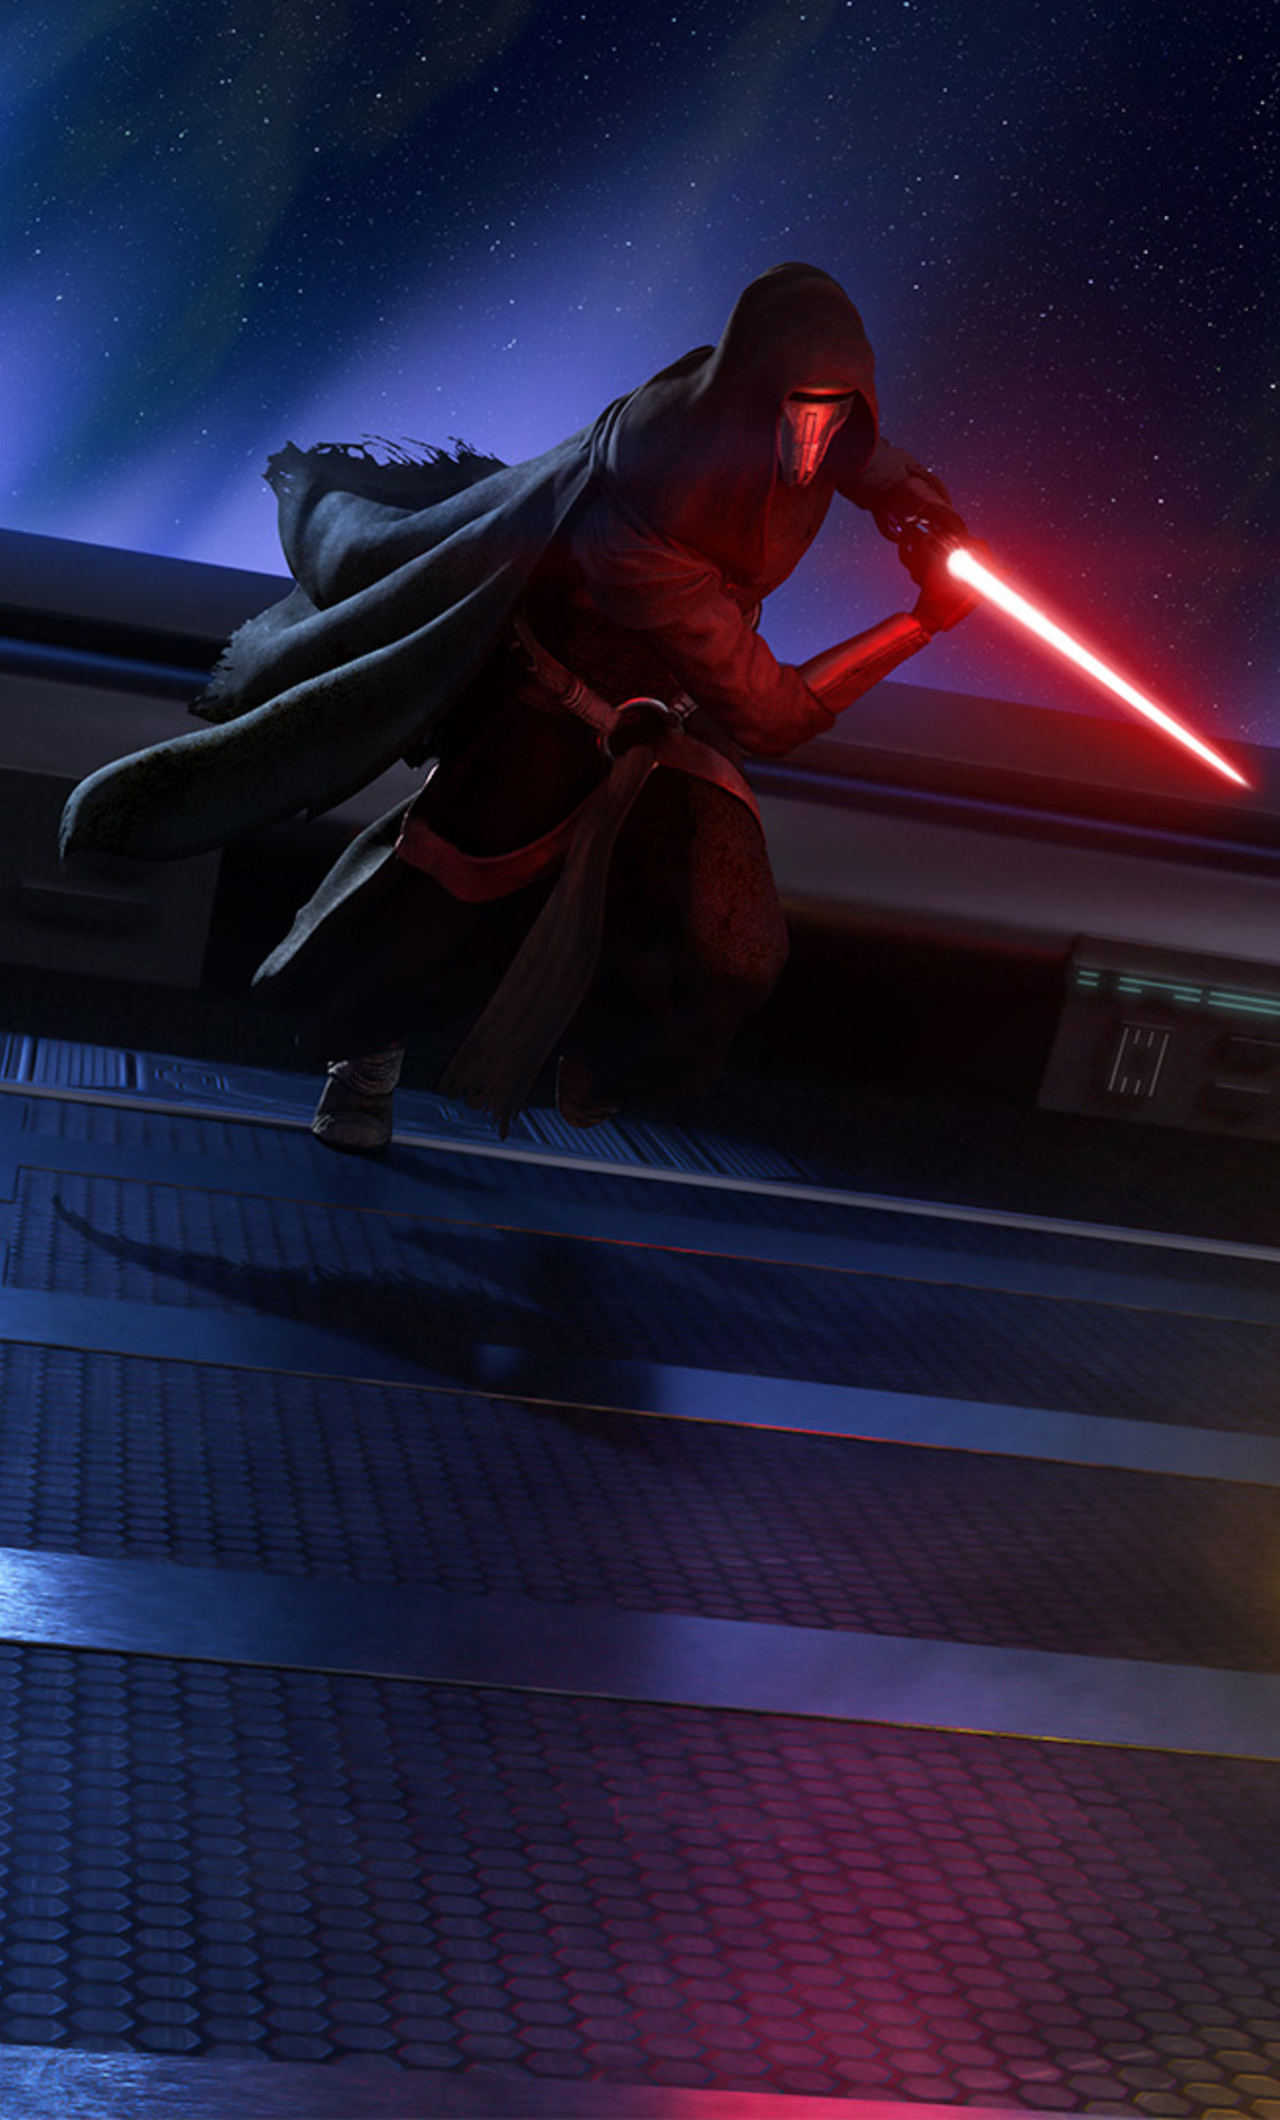 1280x2120 Star Wars Darth Revan Vs Bastila Shan Iphone 6 Hd 4k Wallpapers Images Backgrounds Photos And Pictures